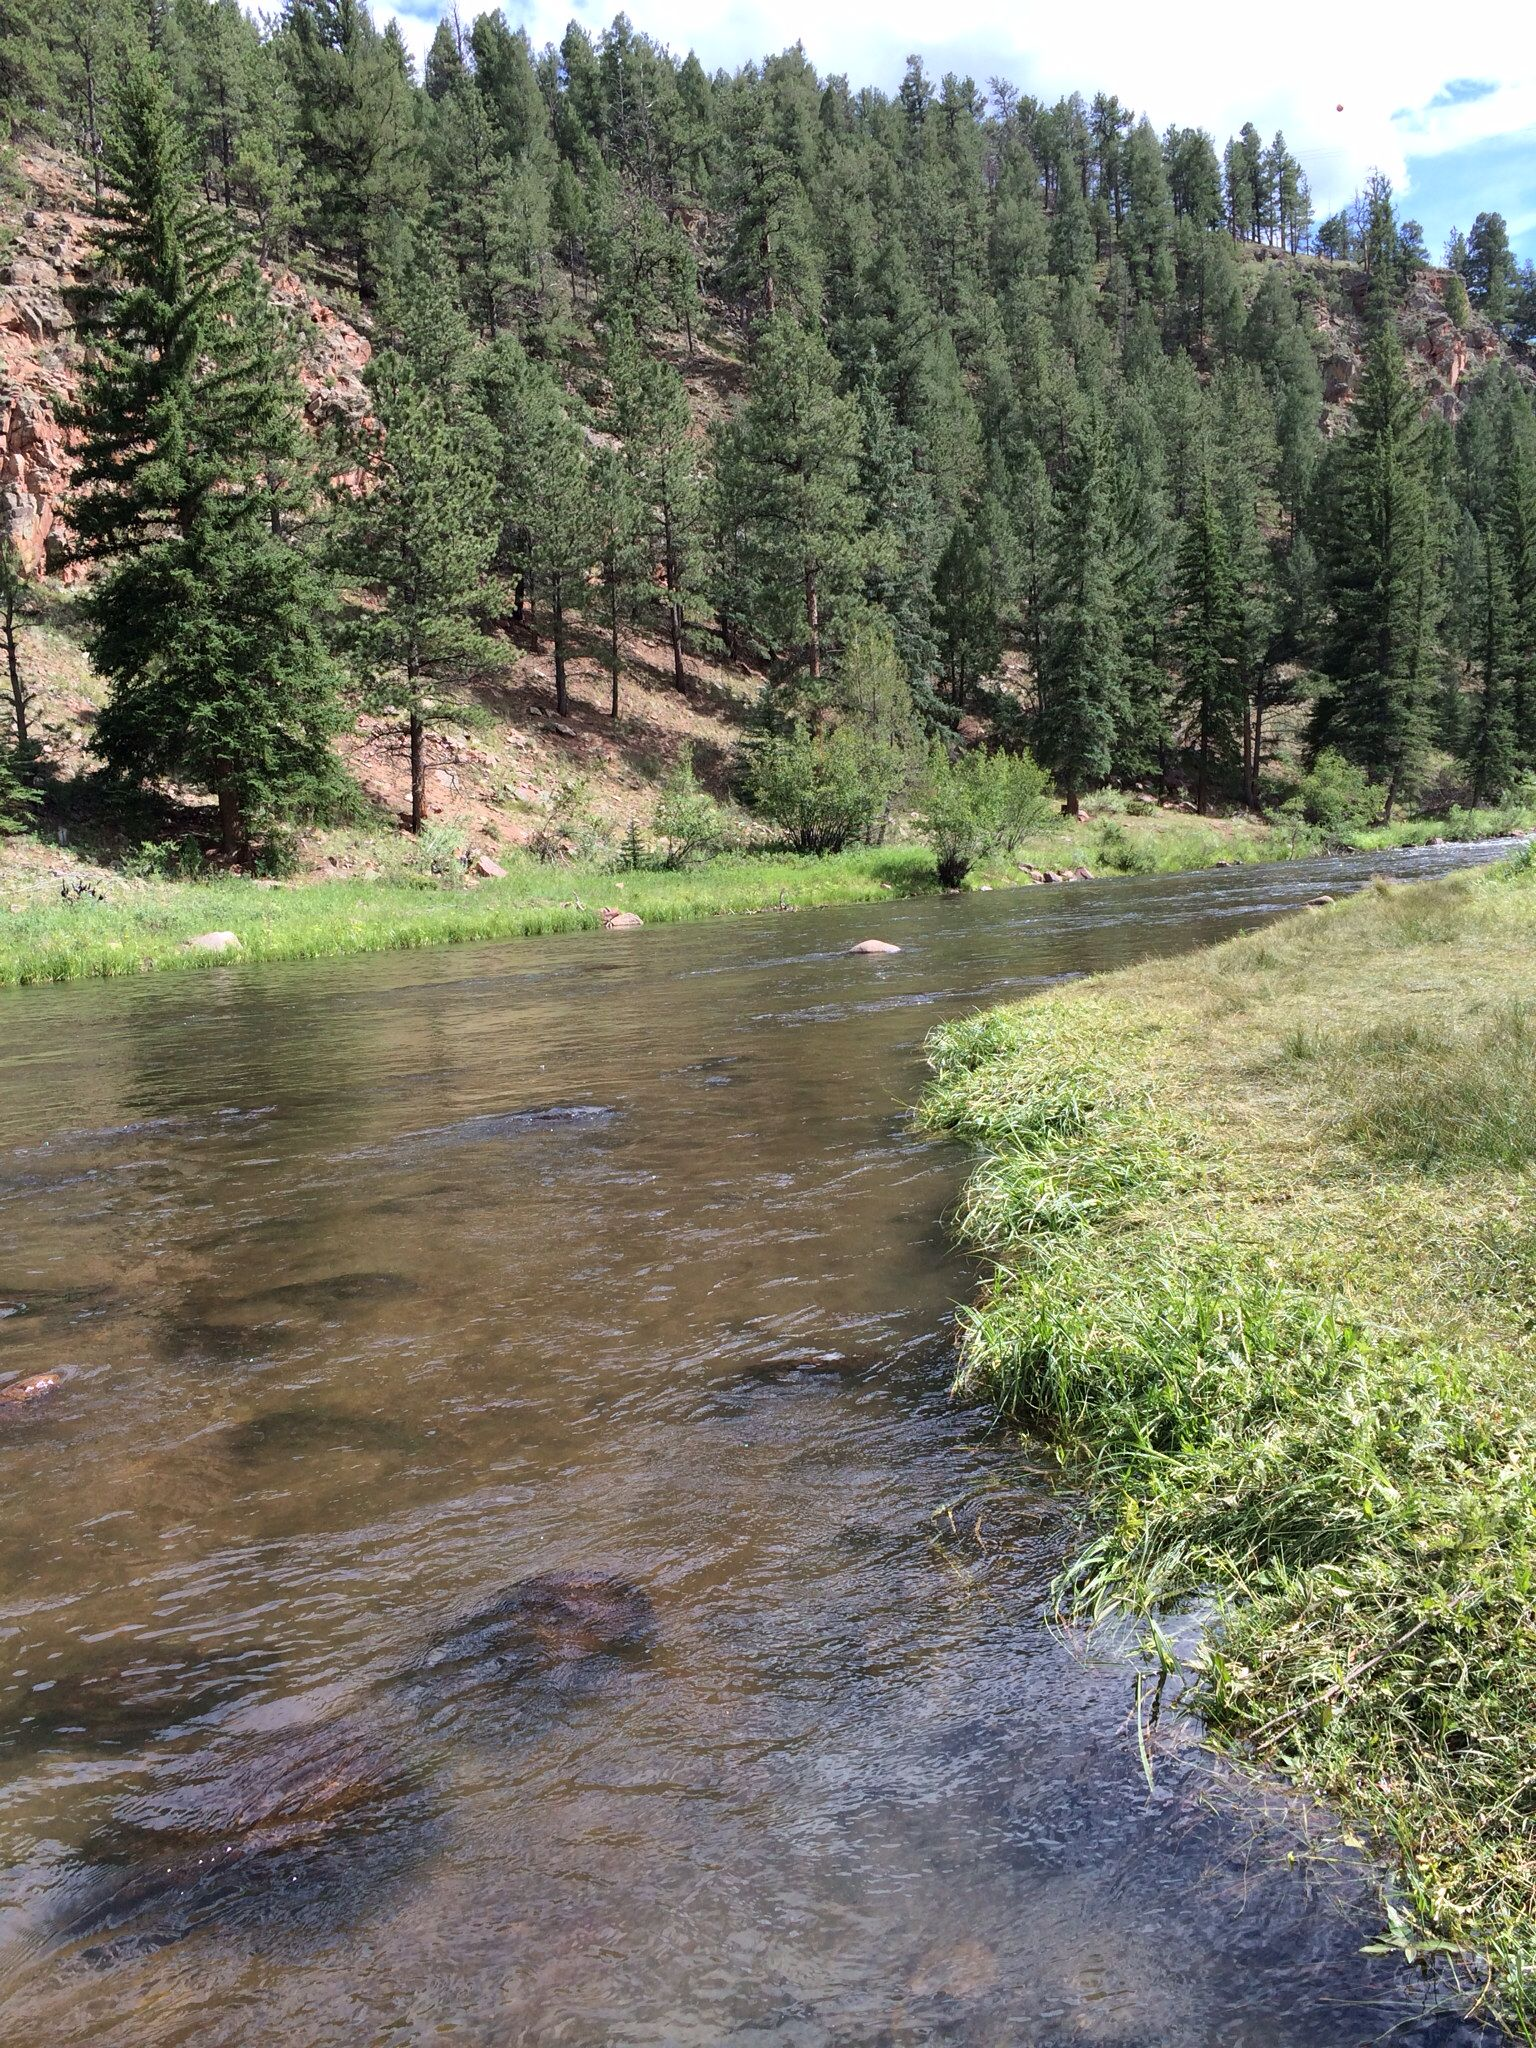 Gorgeous Stream In Florissant Co Laced With Flakes Of Gold Running Thru The Water And Settling On The Rock Bed Fishing Places Fishing Trip Fishing Adventure